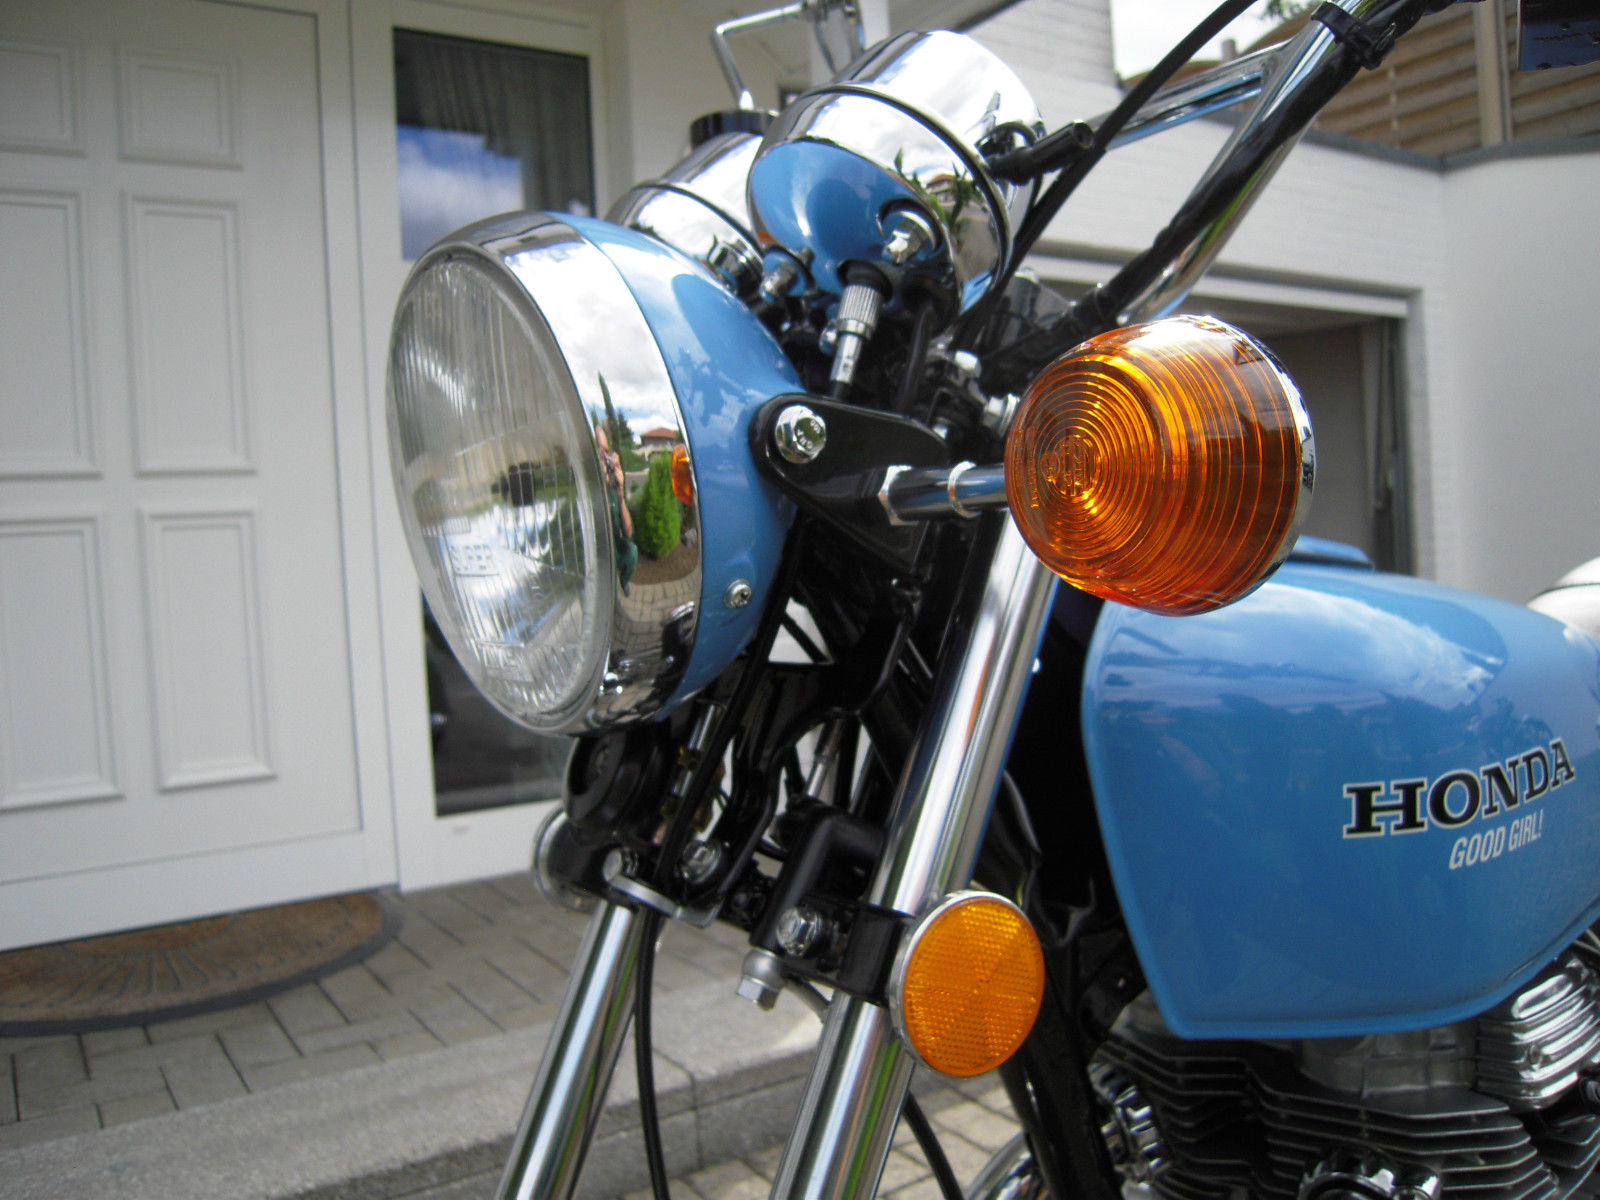 Honda CB360 - 1979 - Headlight, Flasher, Reflector, Clocks and Forks.